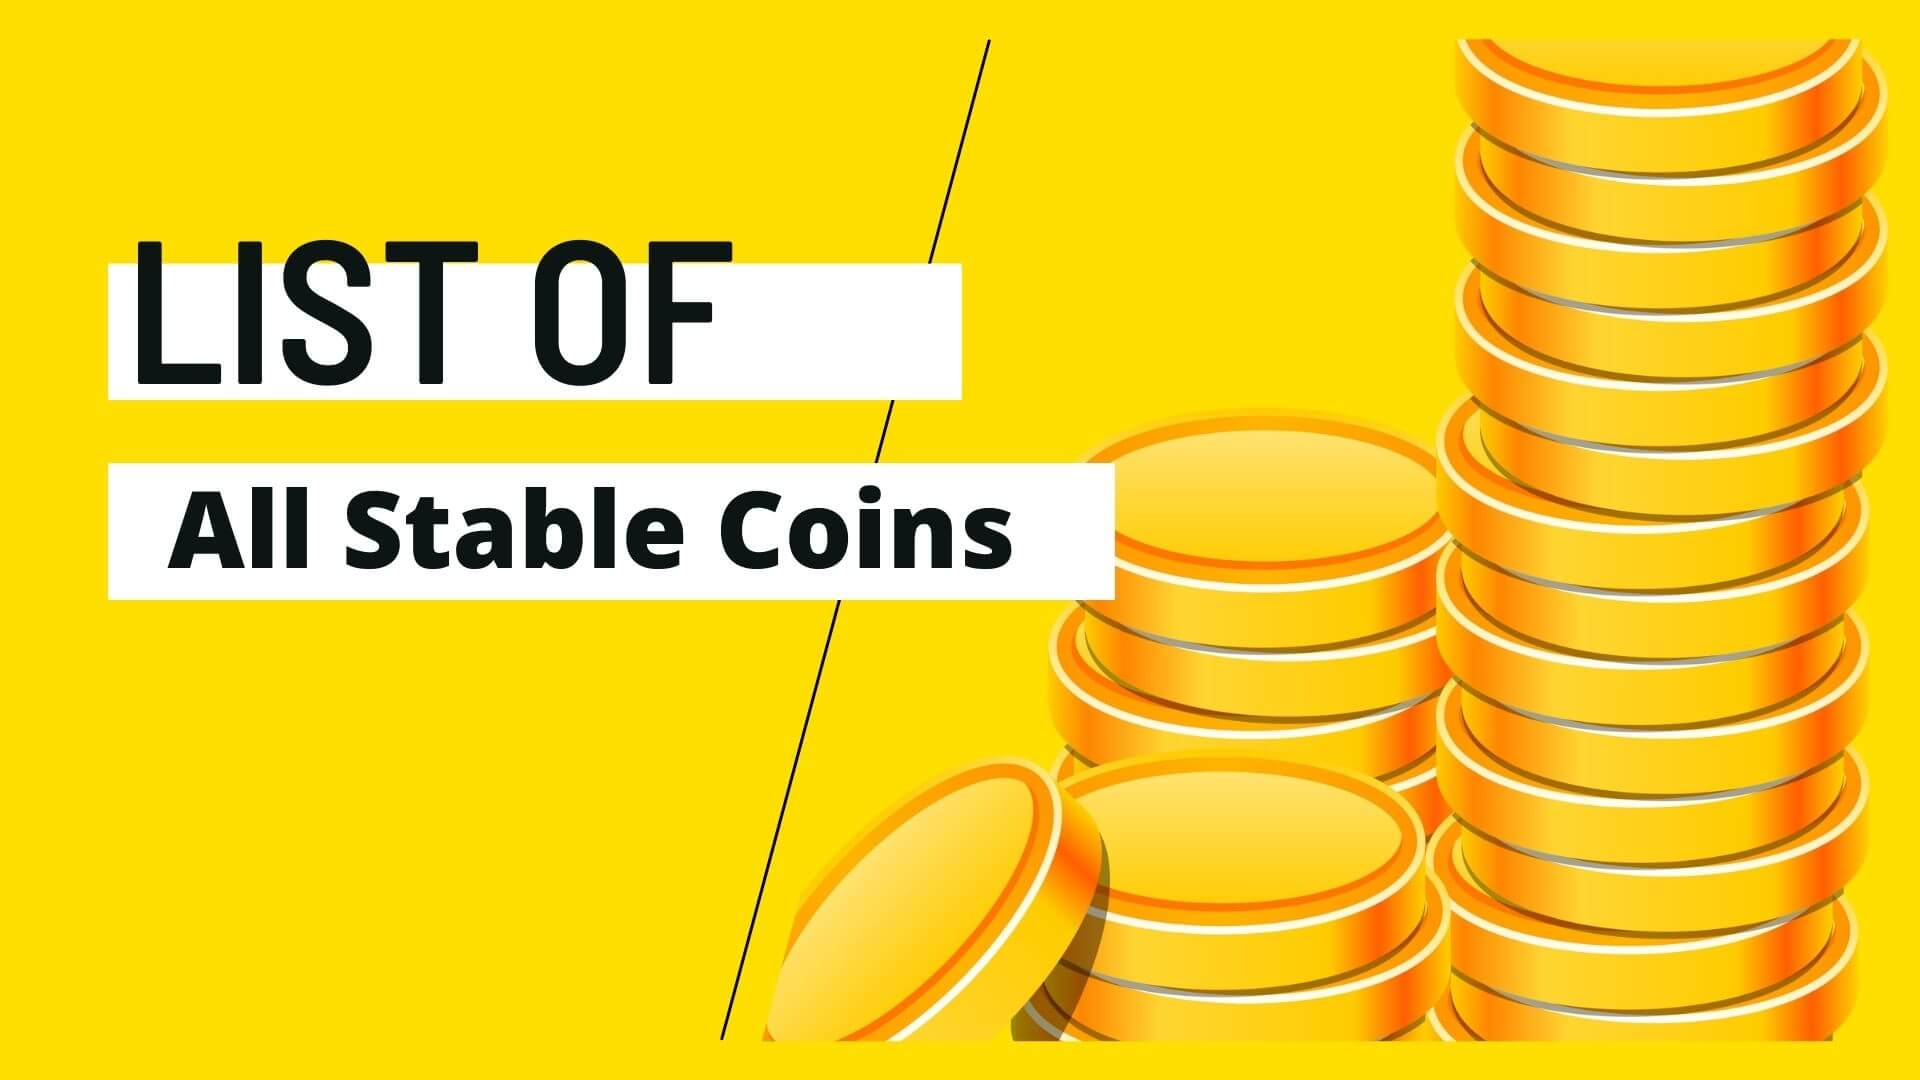 List of all stable coins